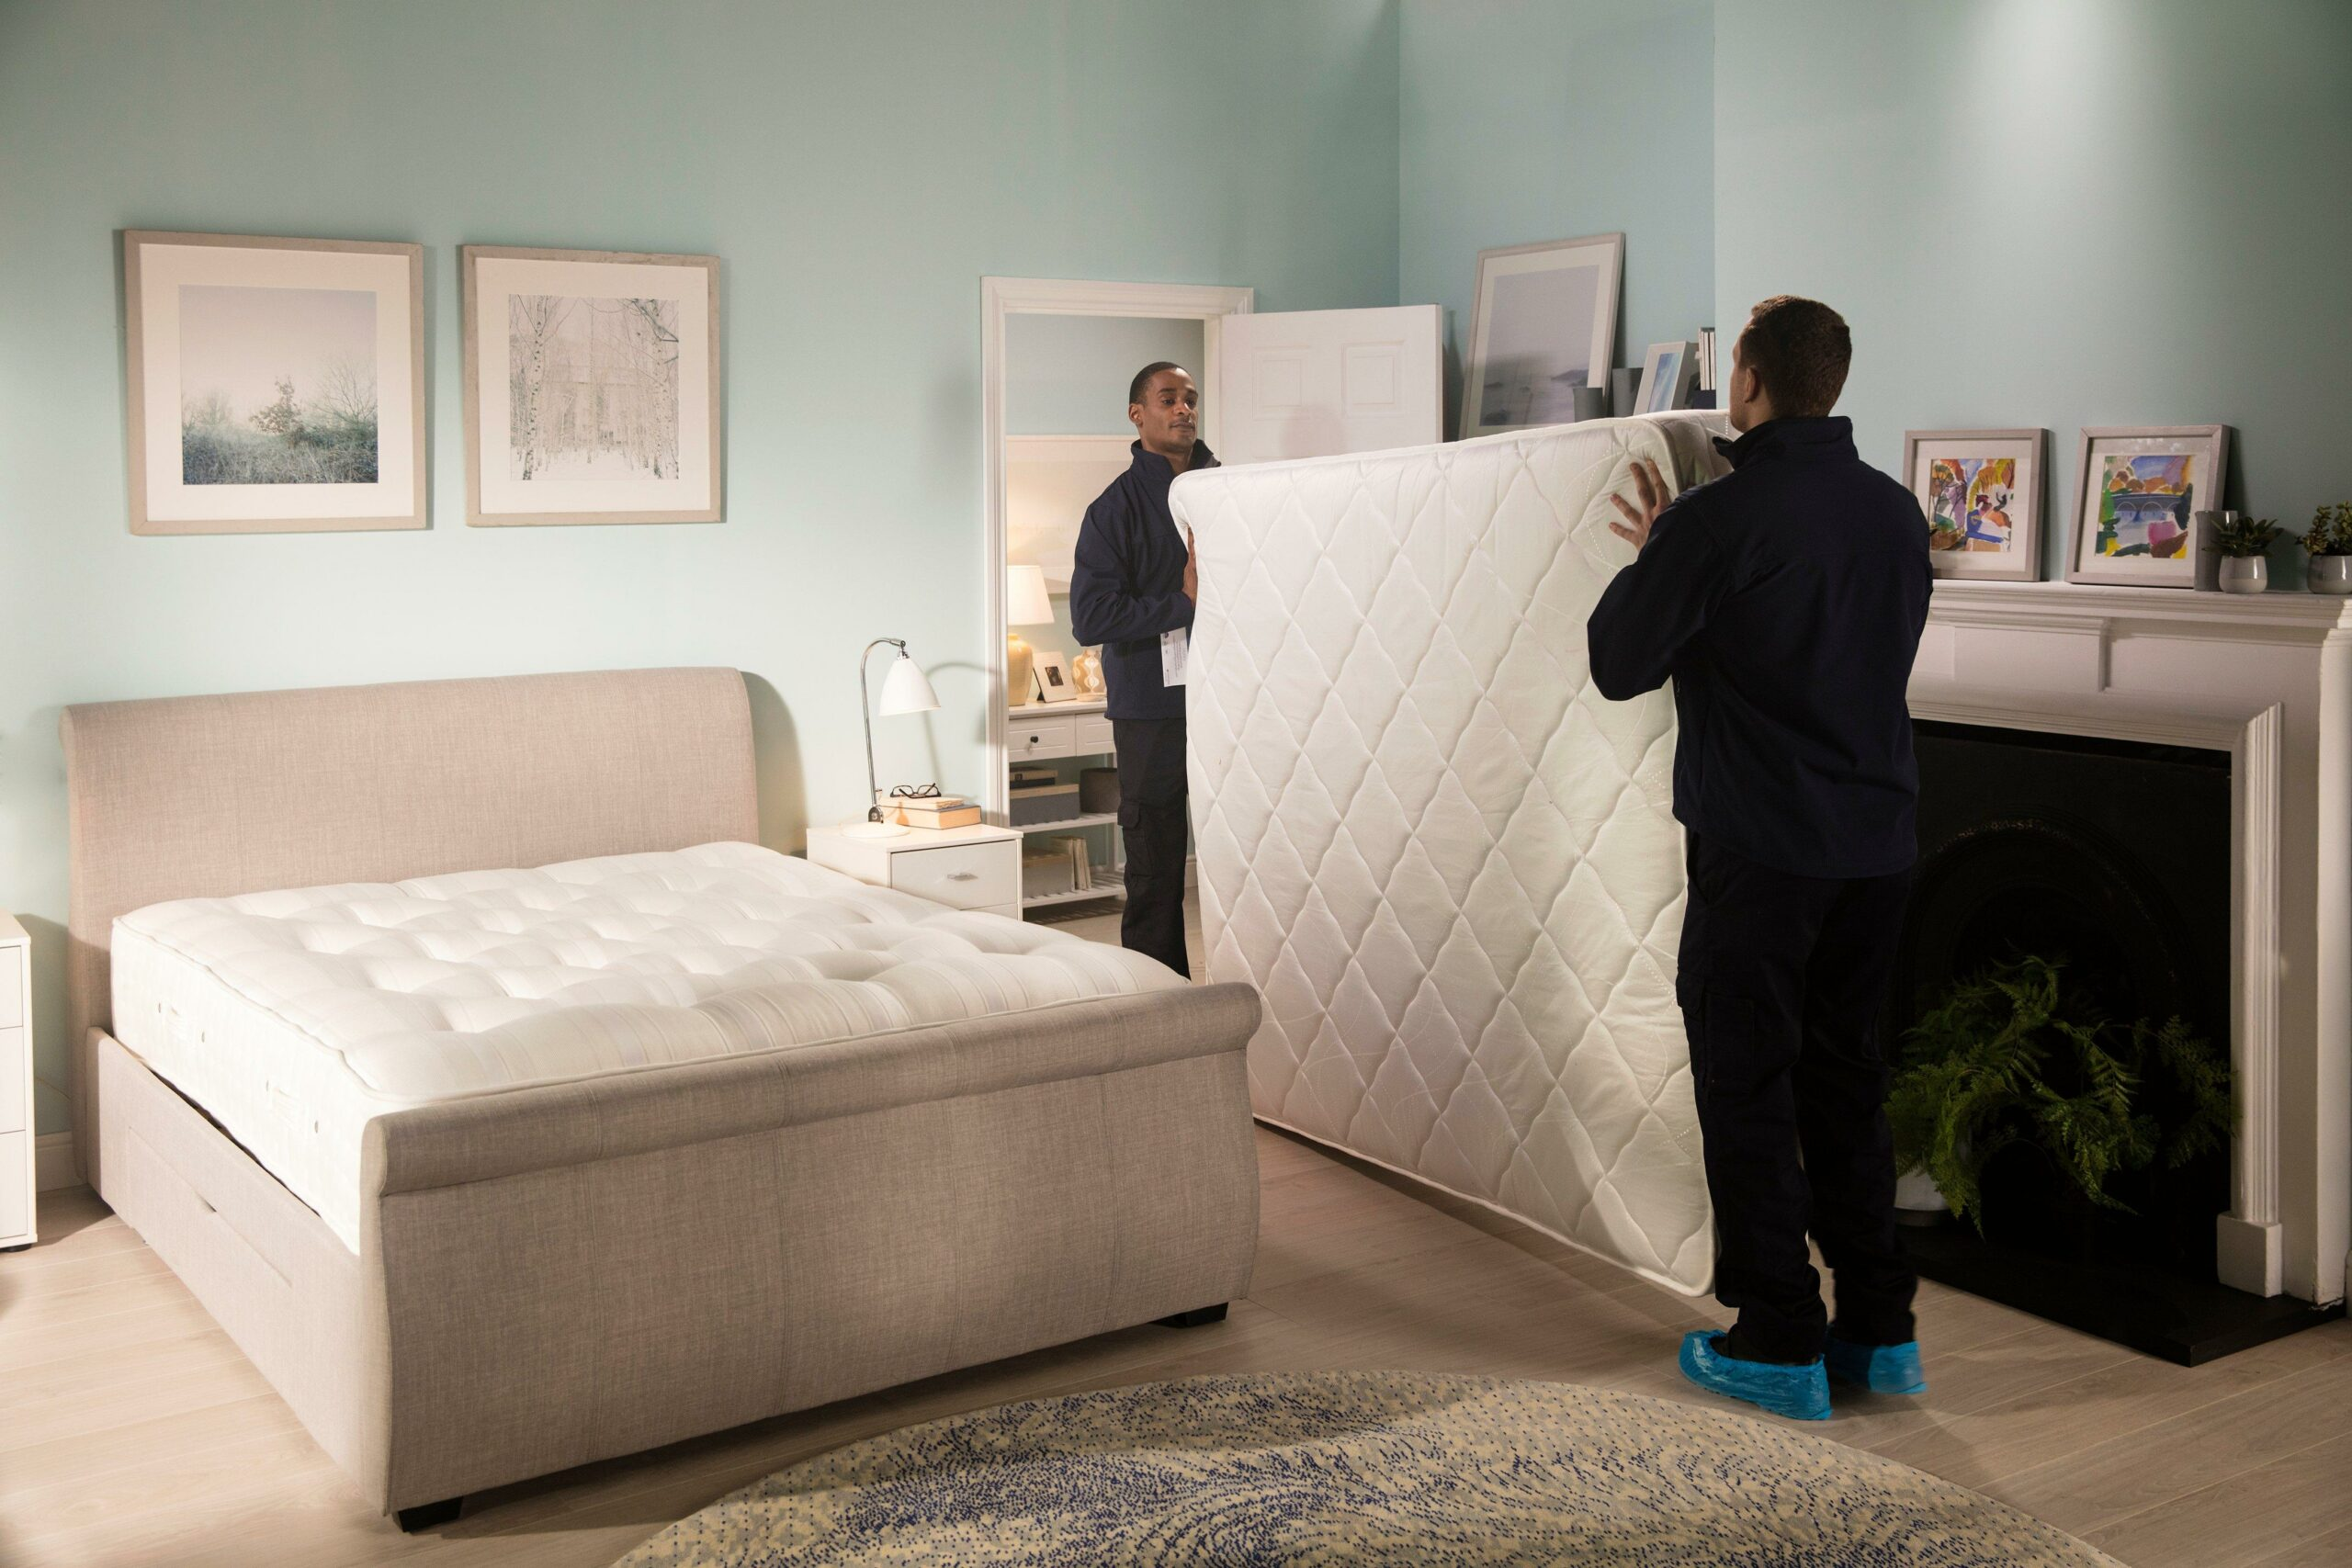 How to Dispose of Old Mattresses and Box Springs